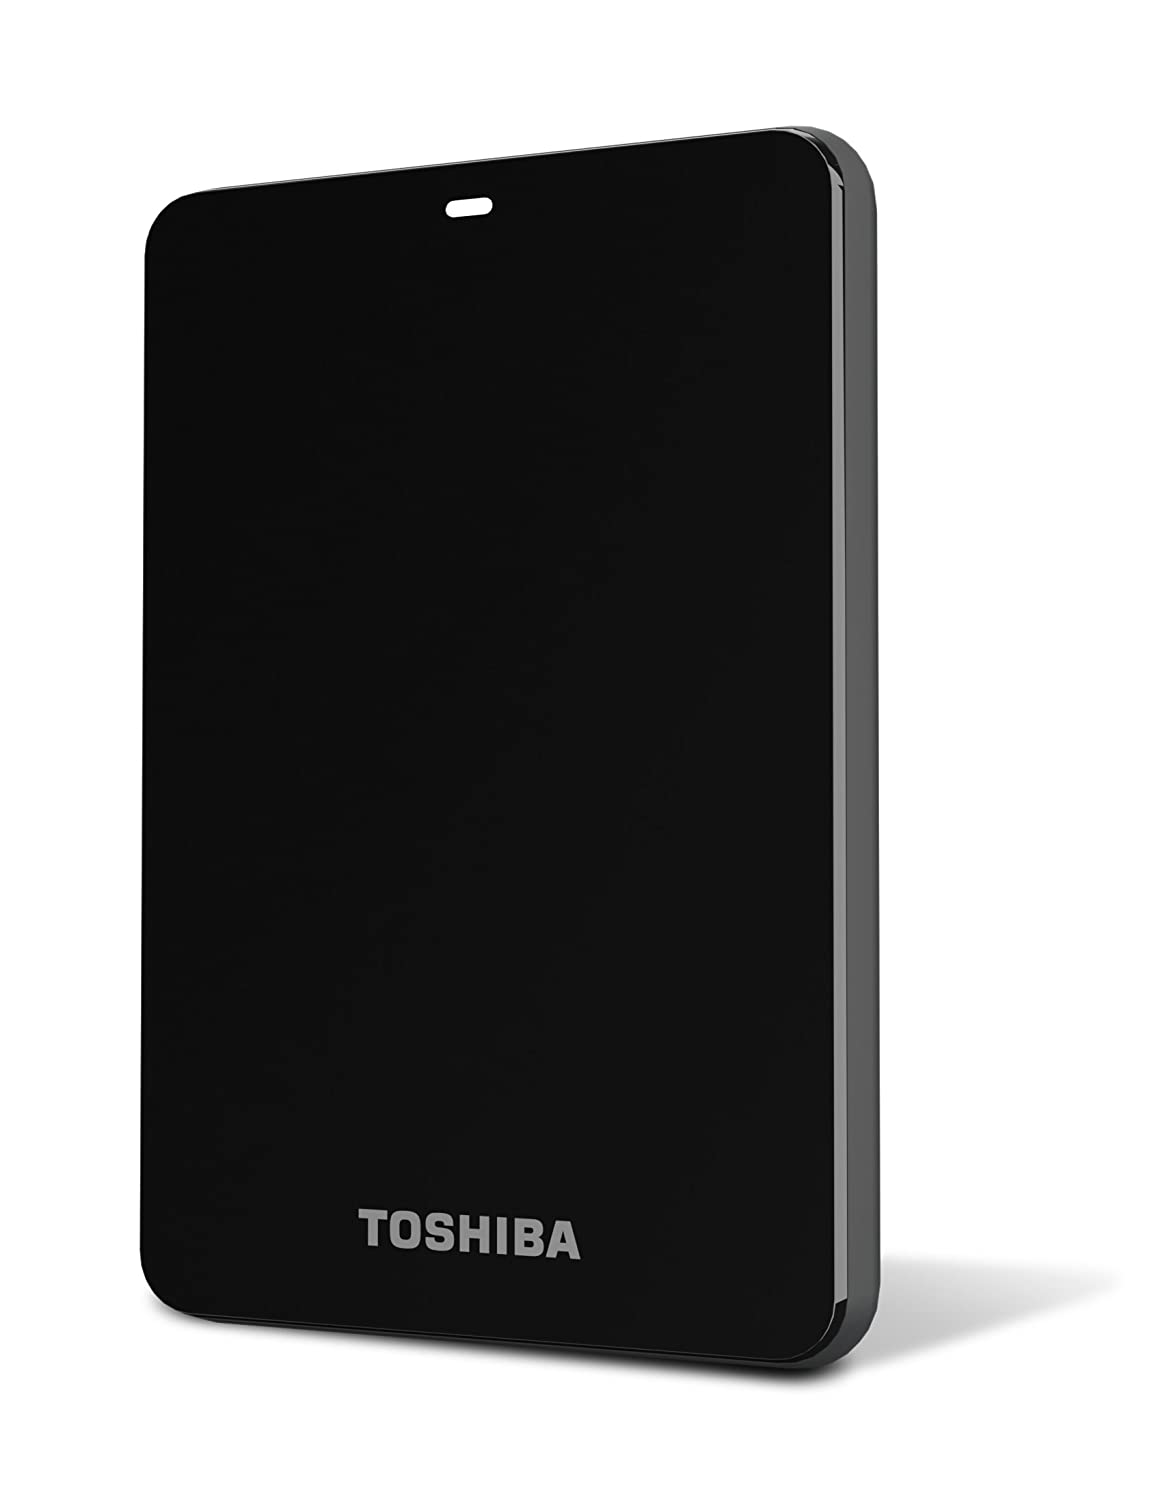 Toshiba 1.5 TB Toshiba Canvio 3.0 Plus Portable Hard Drive in Black (HDTC615XK3B1)